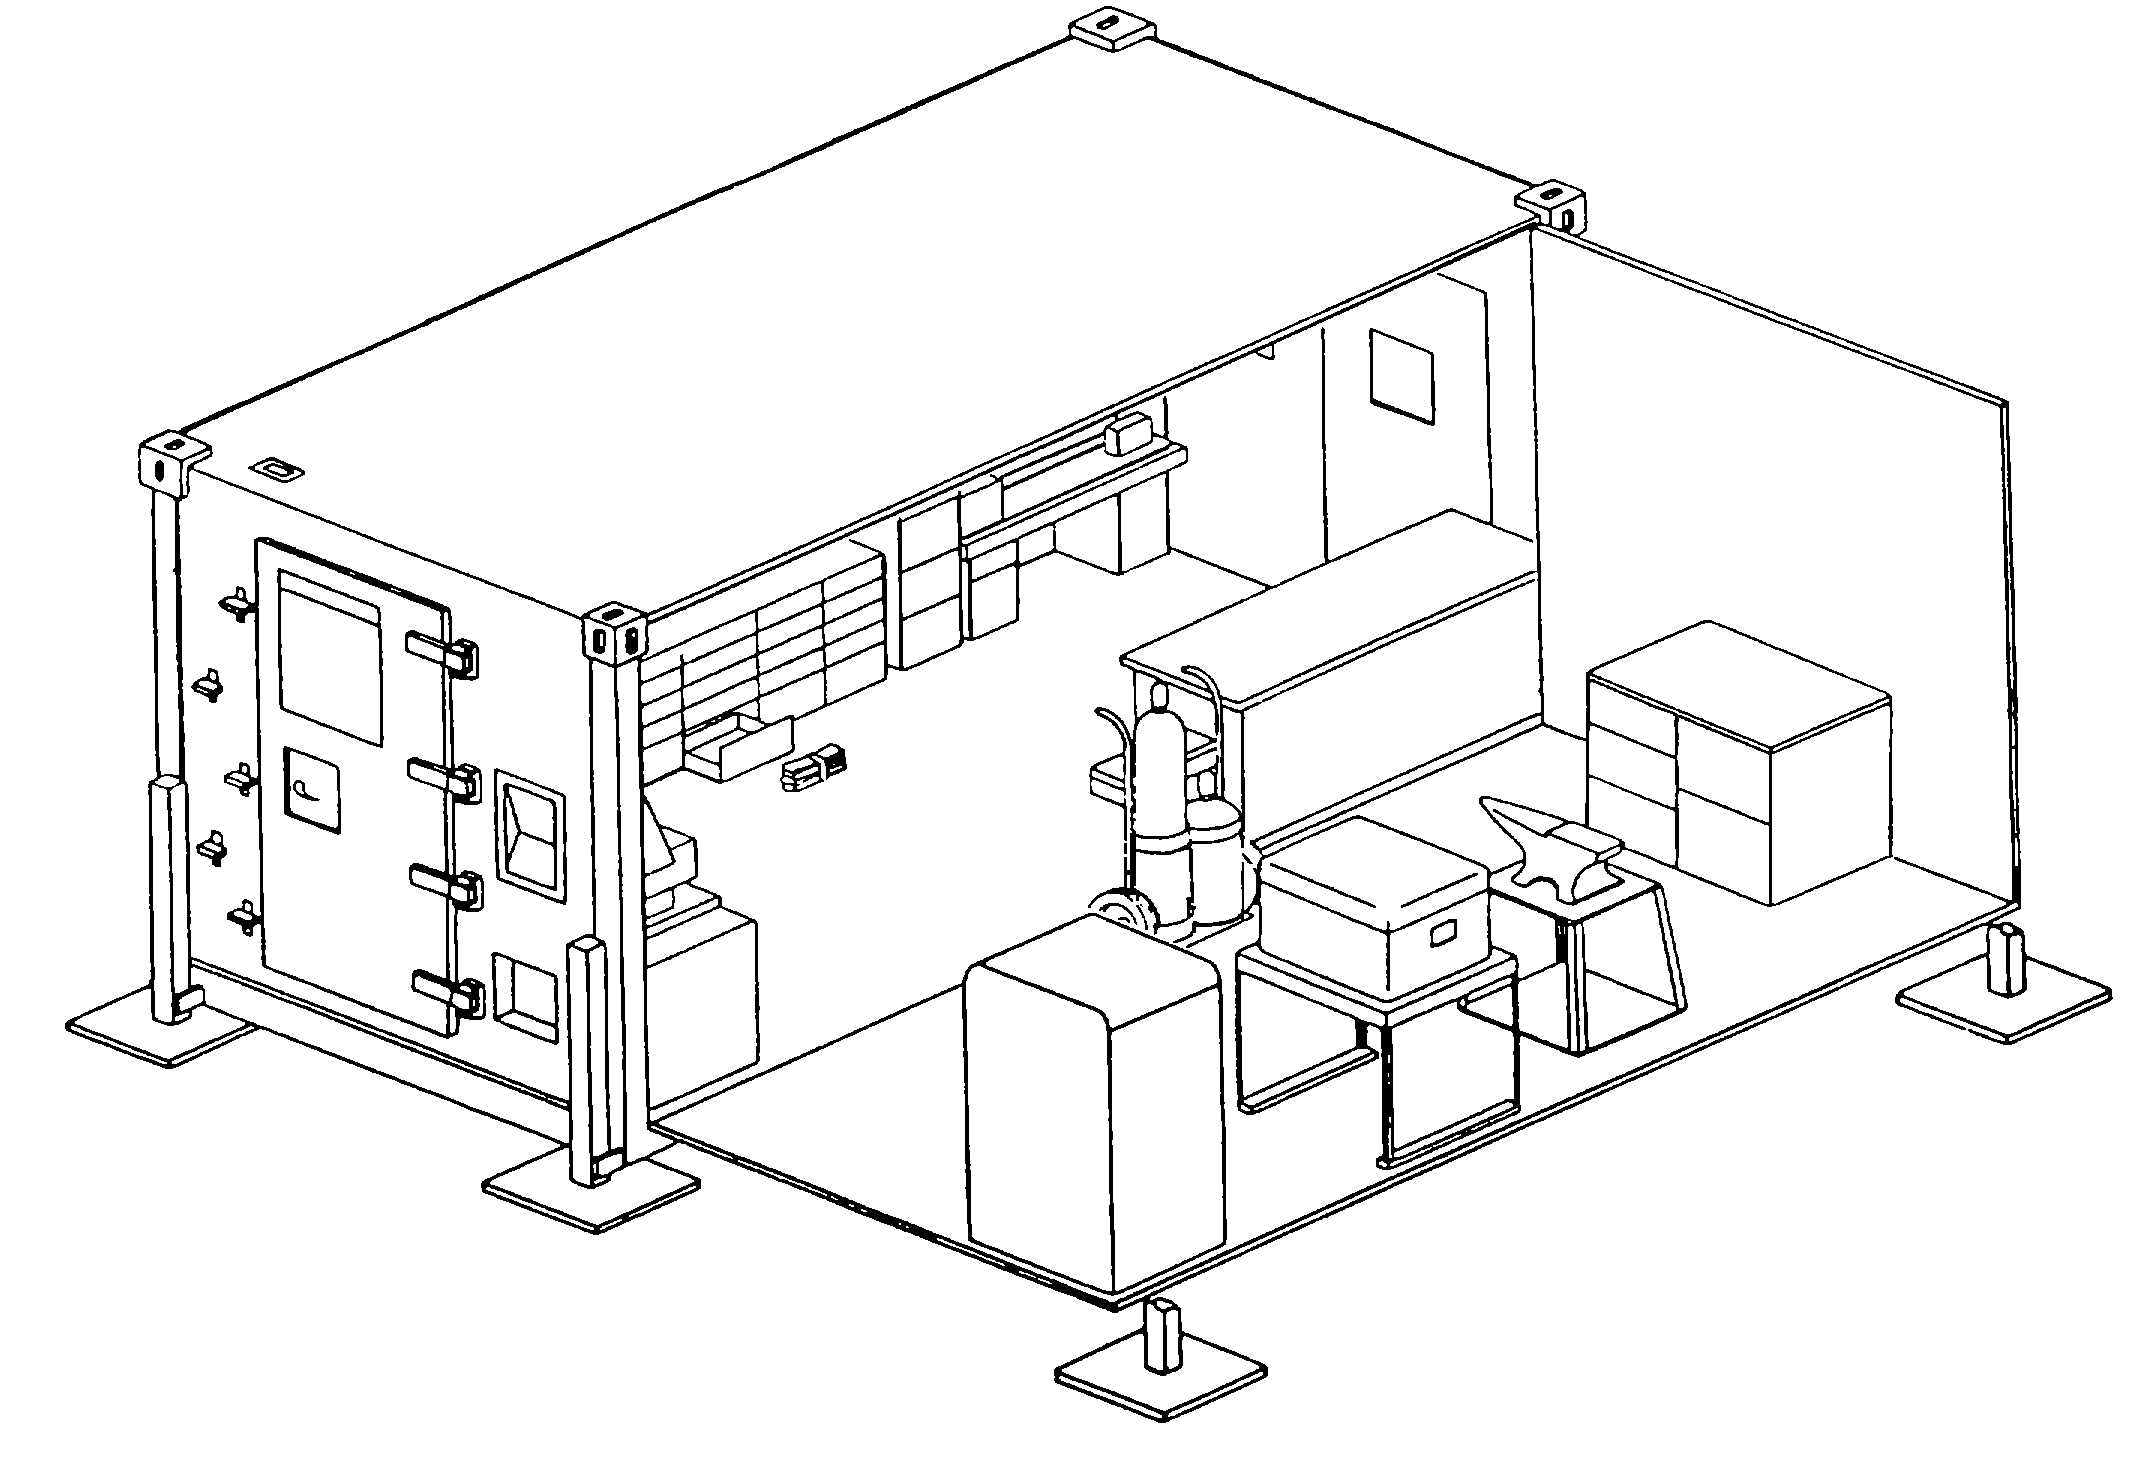 Figure 2-1. Temporary Shop Layout